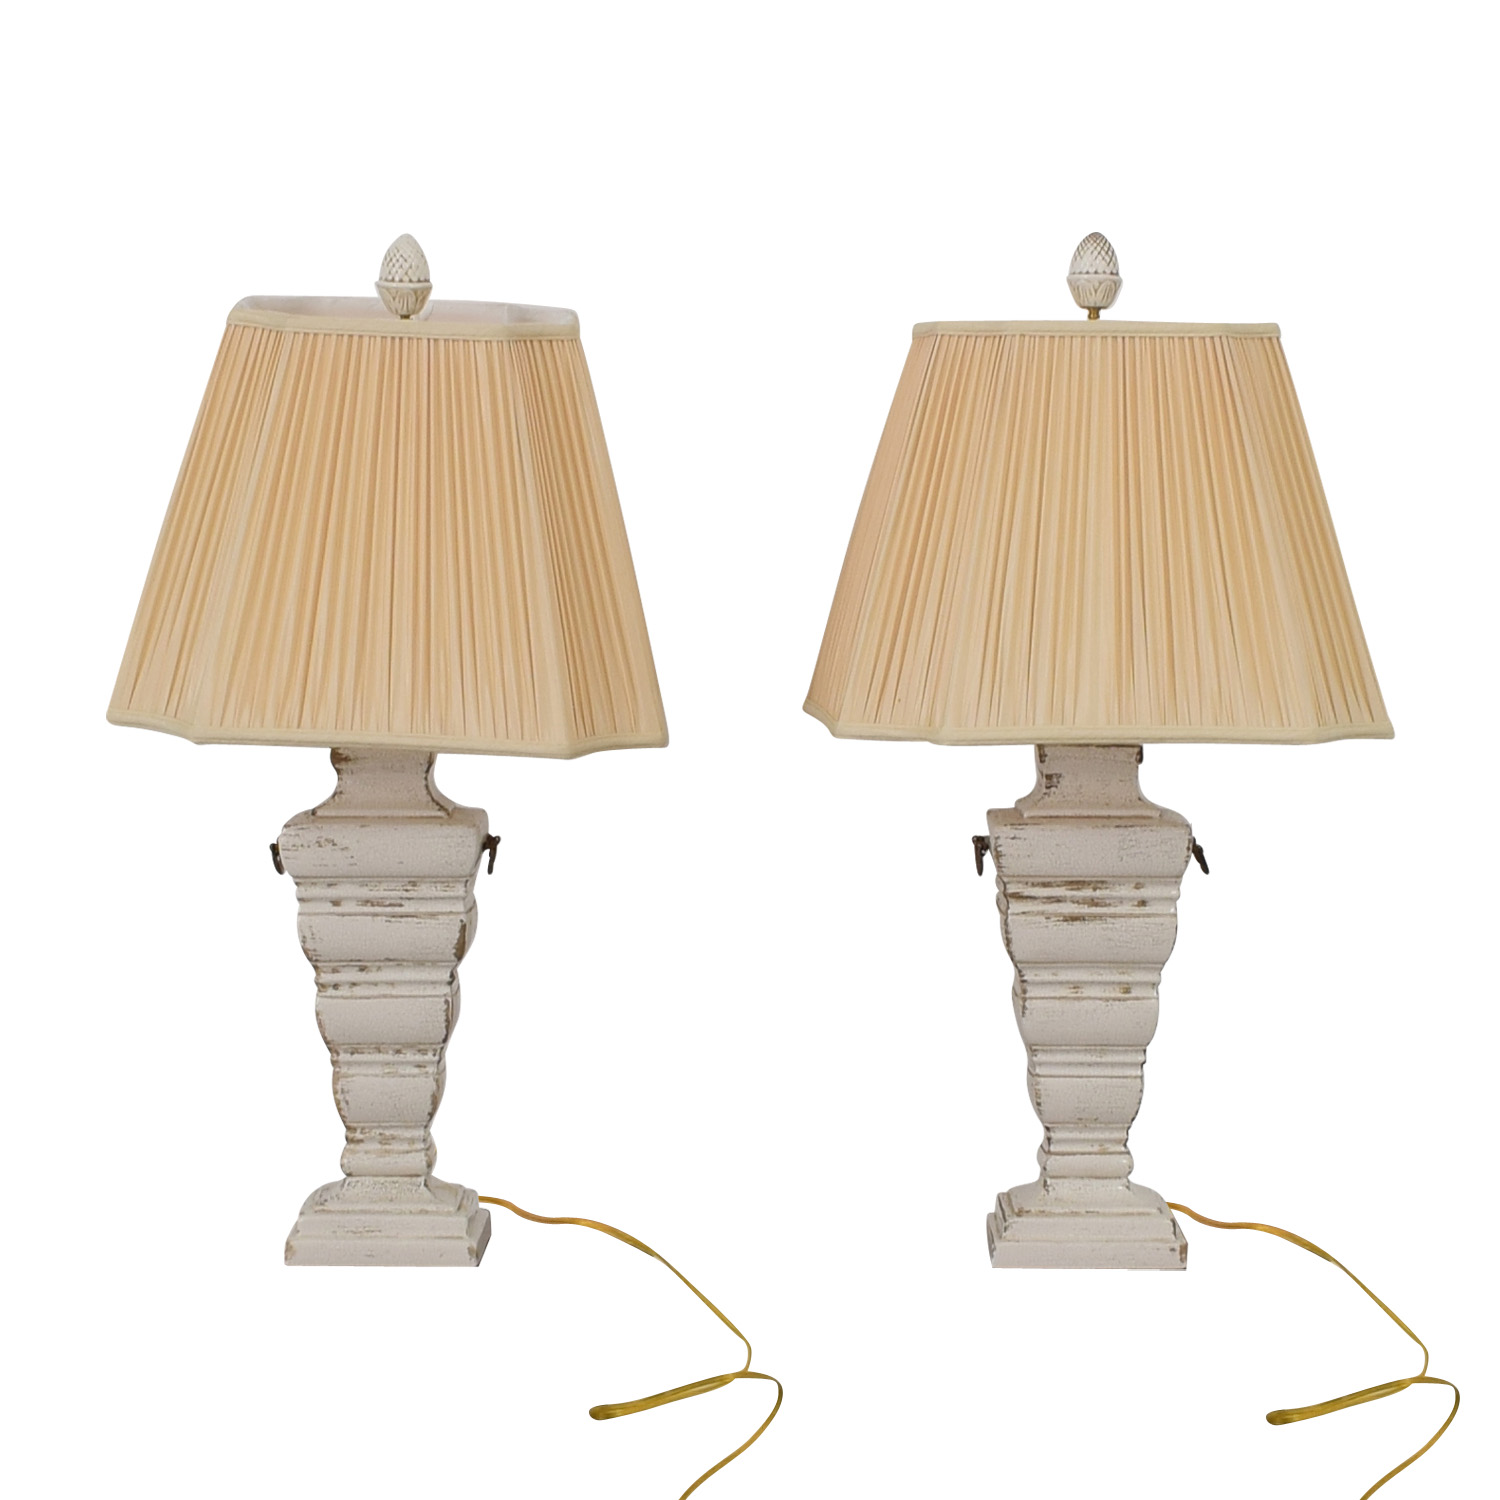 buy The Bradburn Gallery The Bradburn Gallery Cream Table Lamps online